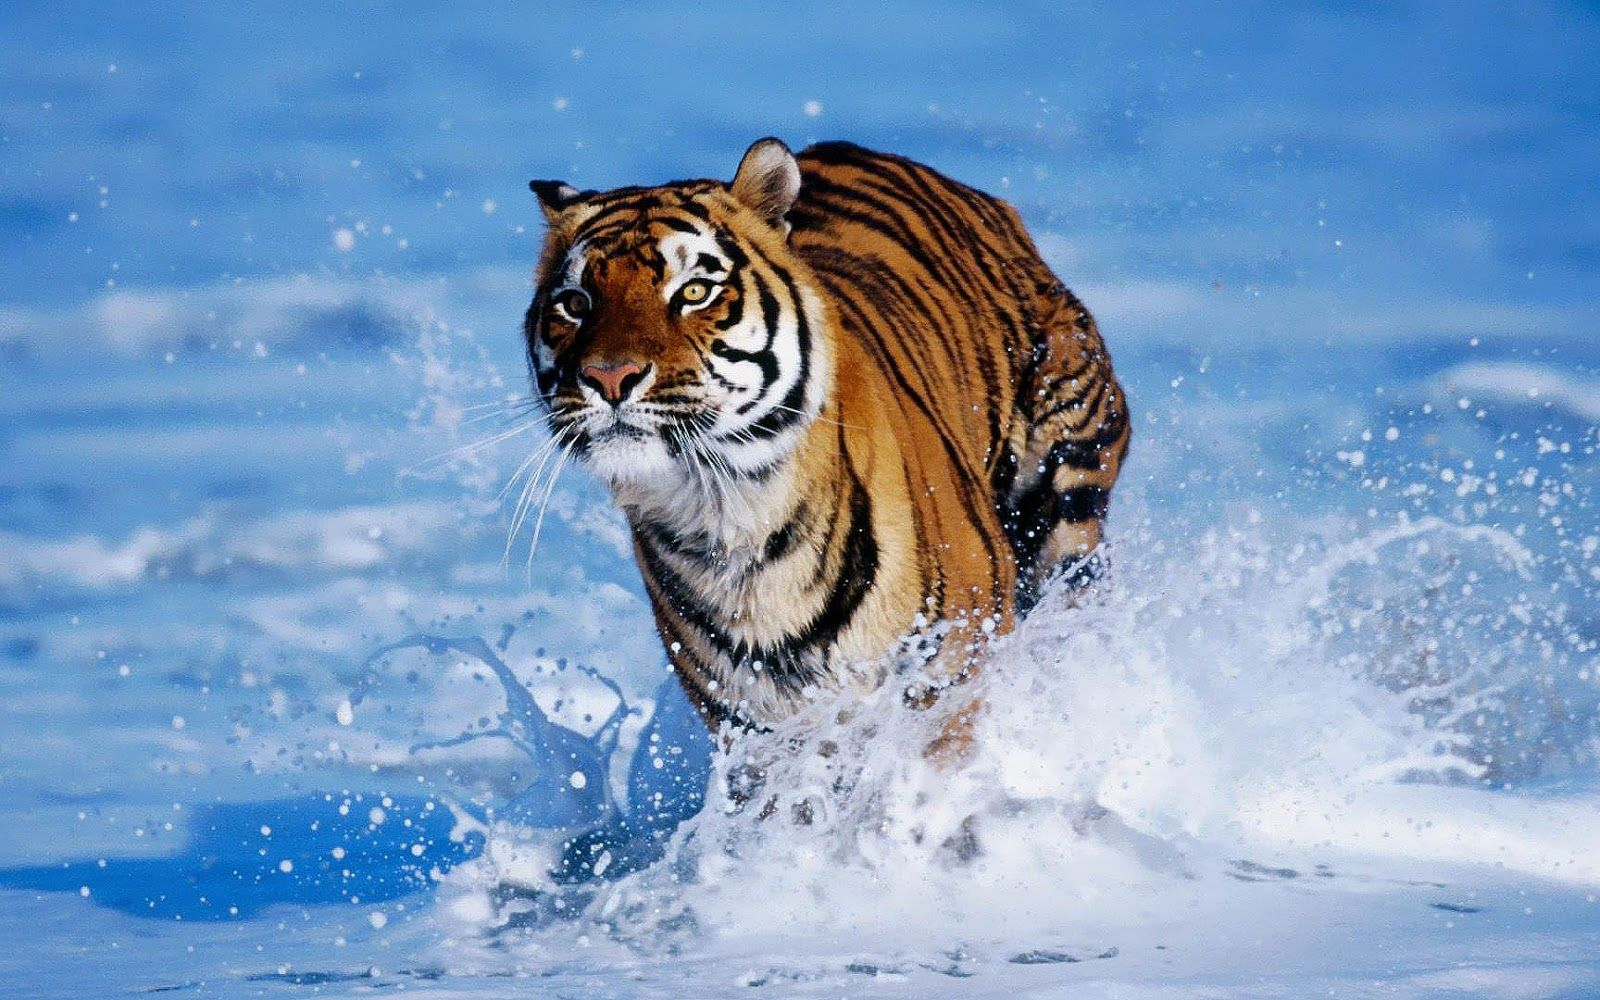 Hd Tigers Wallpapers And Photos Hd Animals Wallpapers Tiger Wallpaper Tiger Attack Tiger In Water